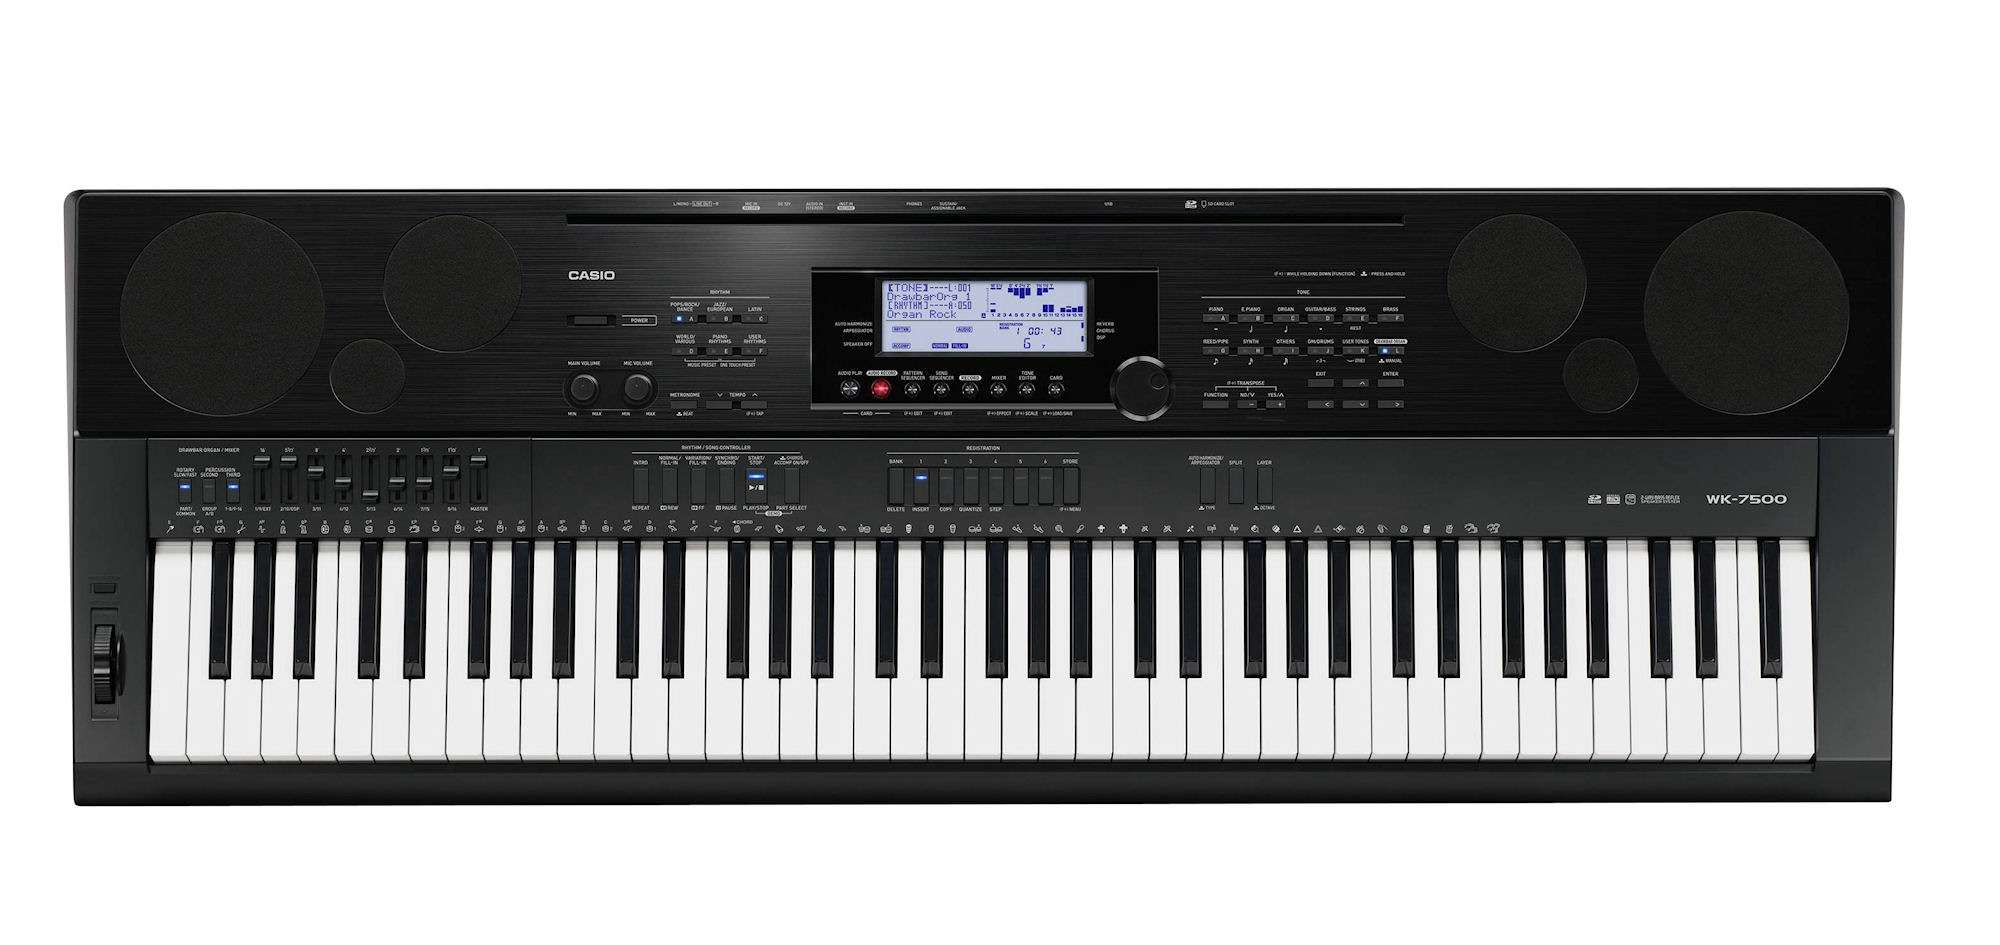 http://www.danorgan.com.vn/upload/images_products/large/Dan-organ-casio-WK-7500.jpg